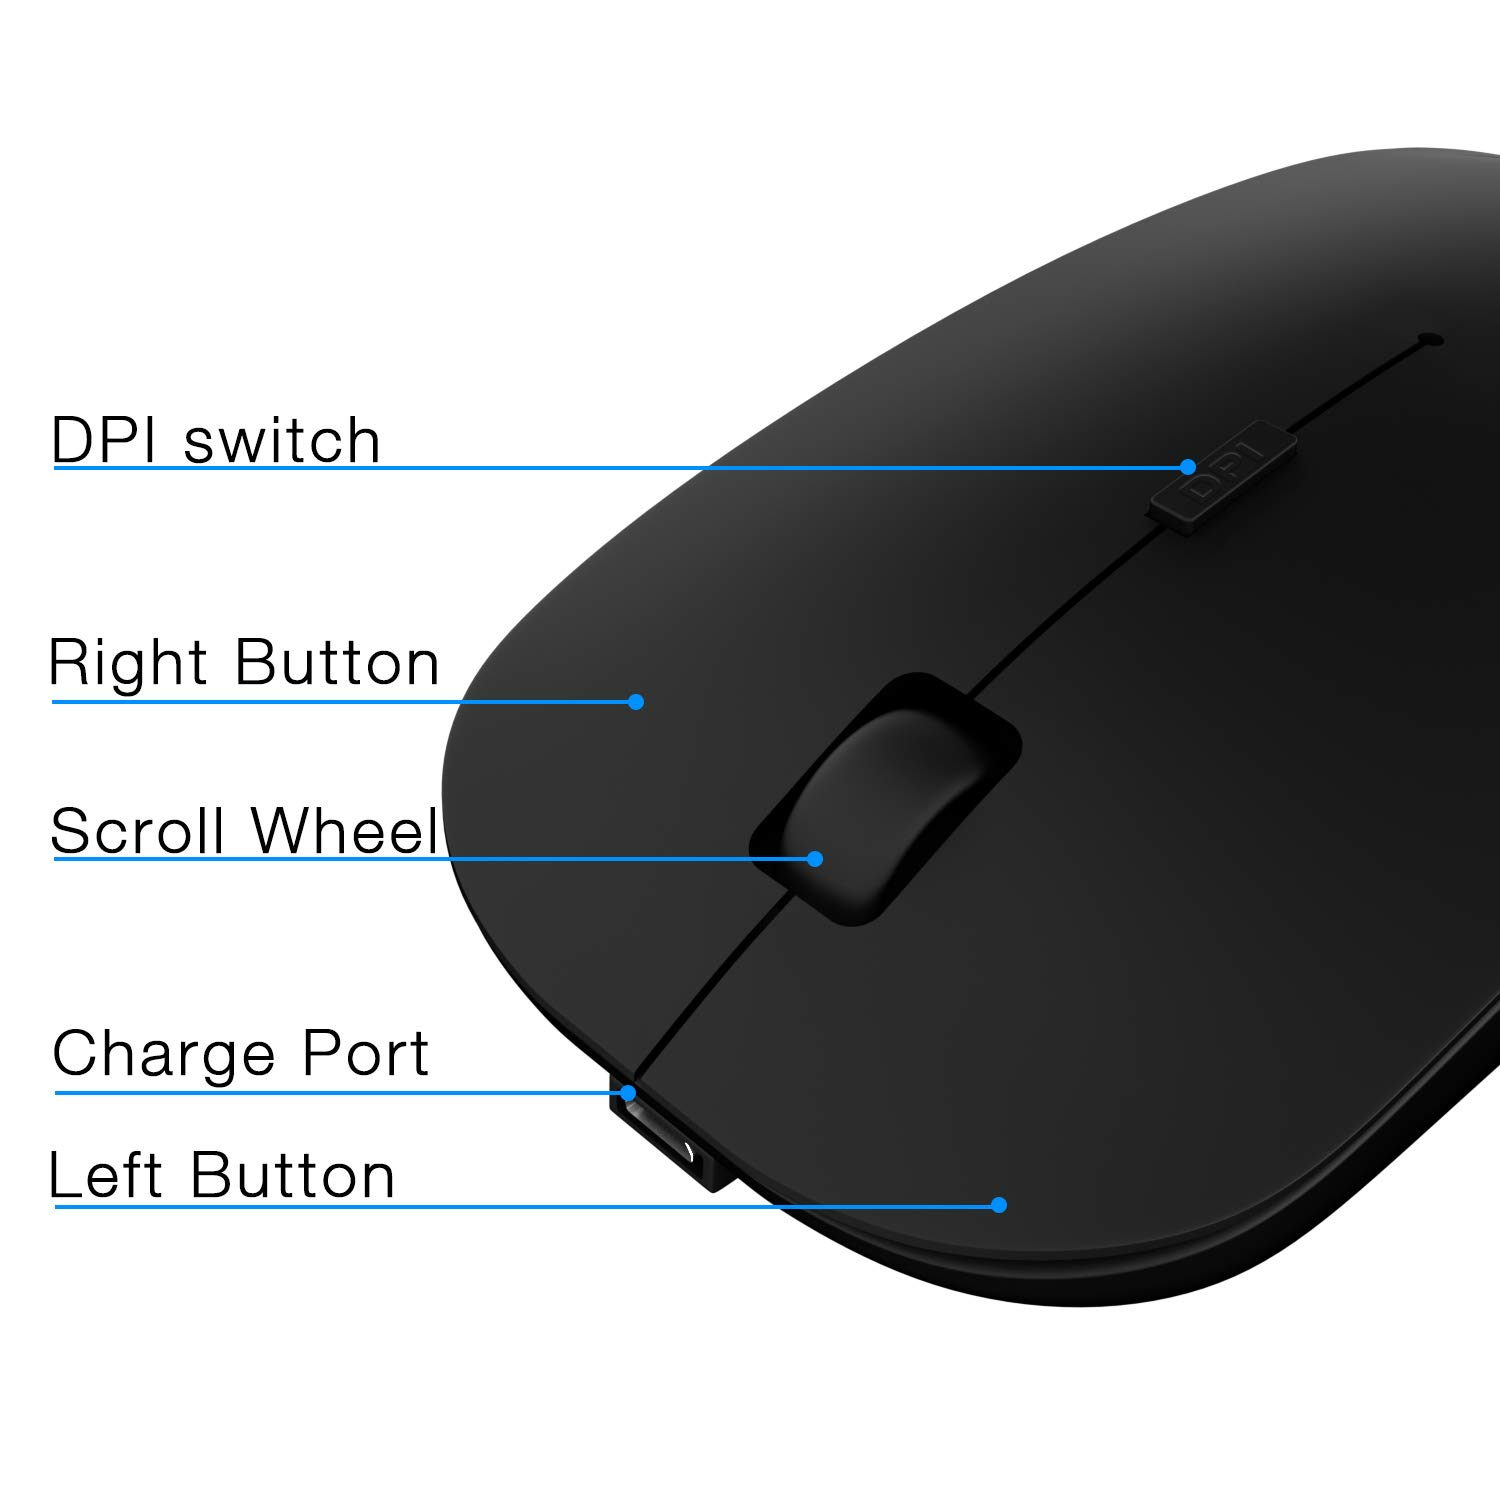 Mac OS Black Chrome or Android Compact Wireless Mouse with 10 Month Battery Life Works with Any Bluetooth Enabled Computer DEI QI Bluetooth Mouse Laptop or Tablet Running Windows